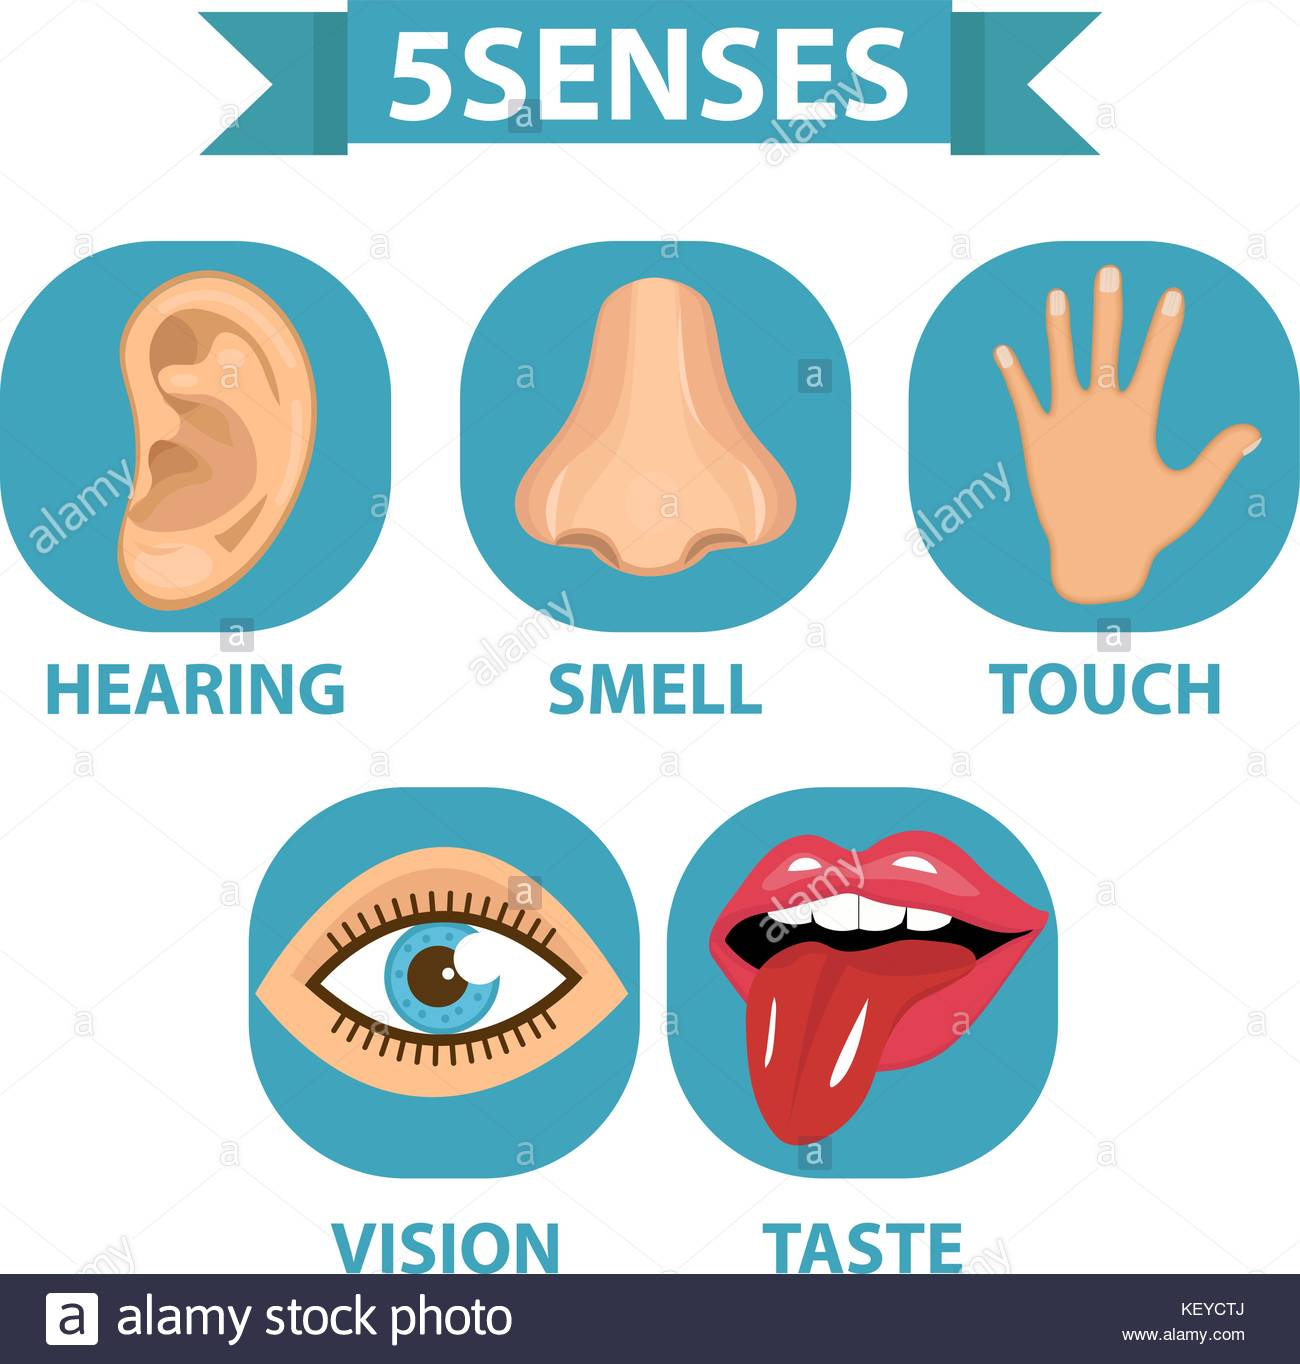 5 senses icon set Touch smell hearing vision taste Isolated 1300x1364